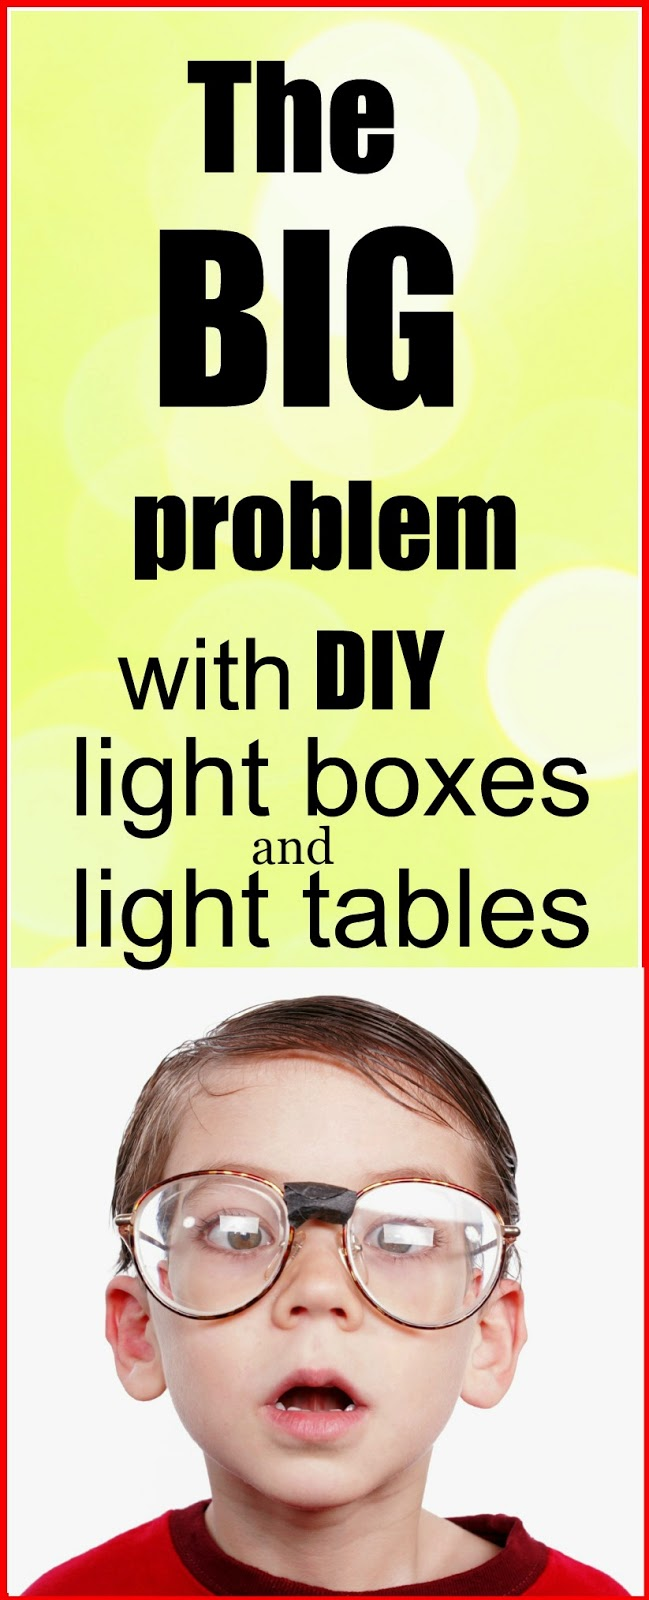 The BIG problem with DIY light boxes and light table